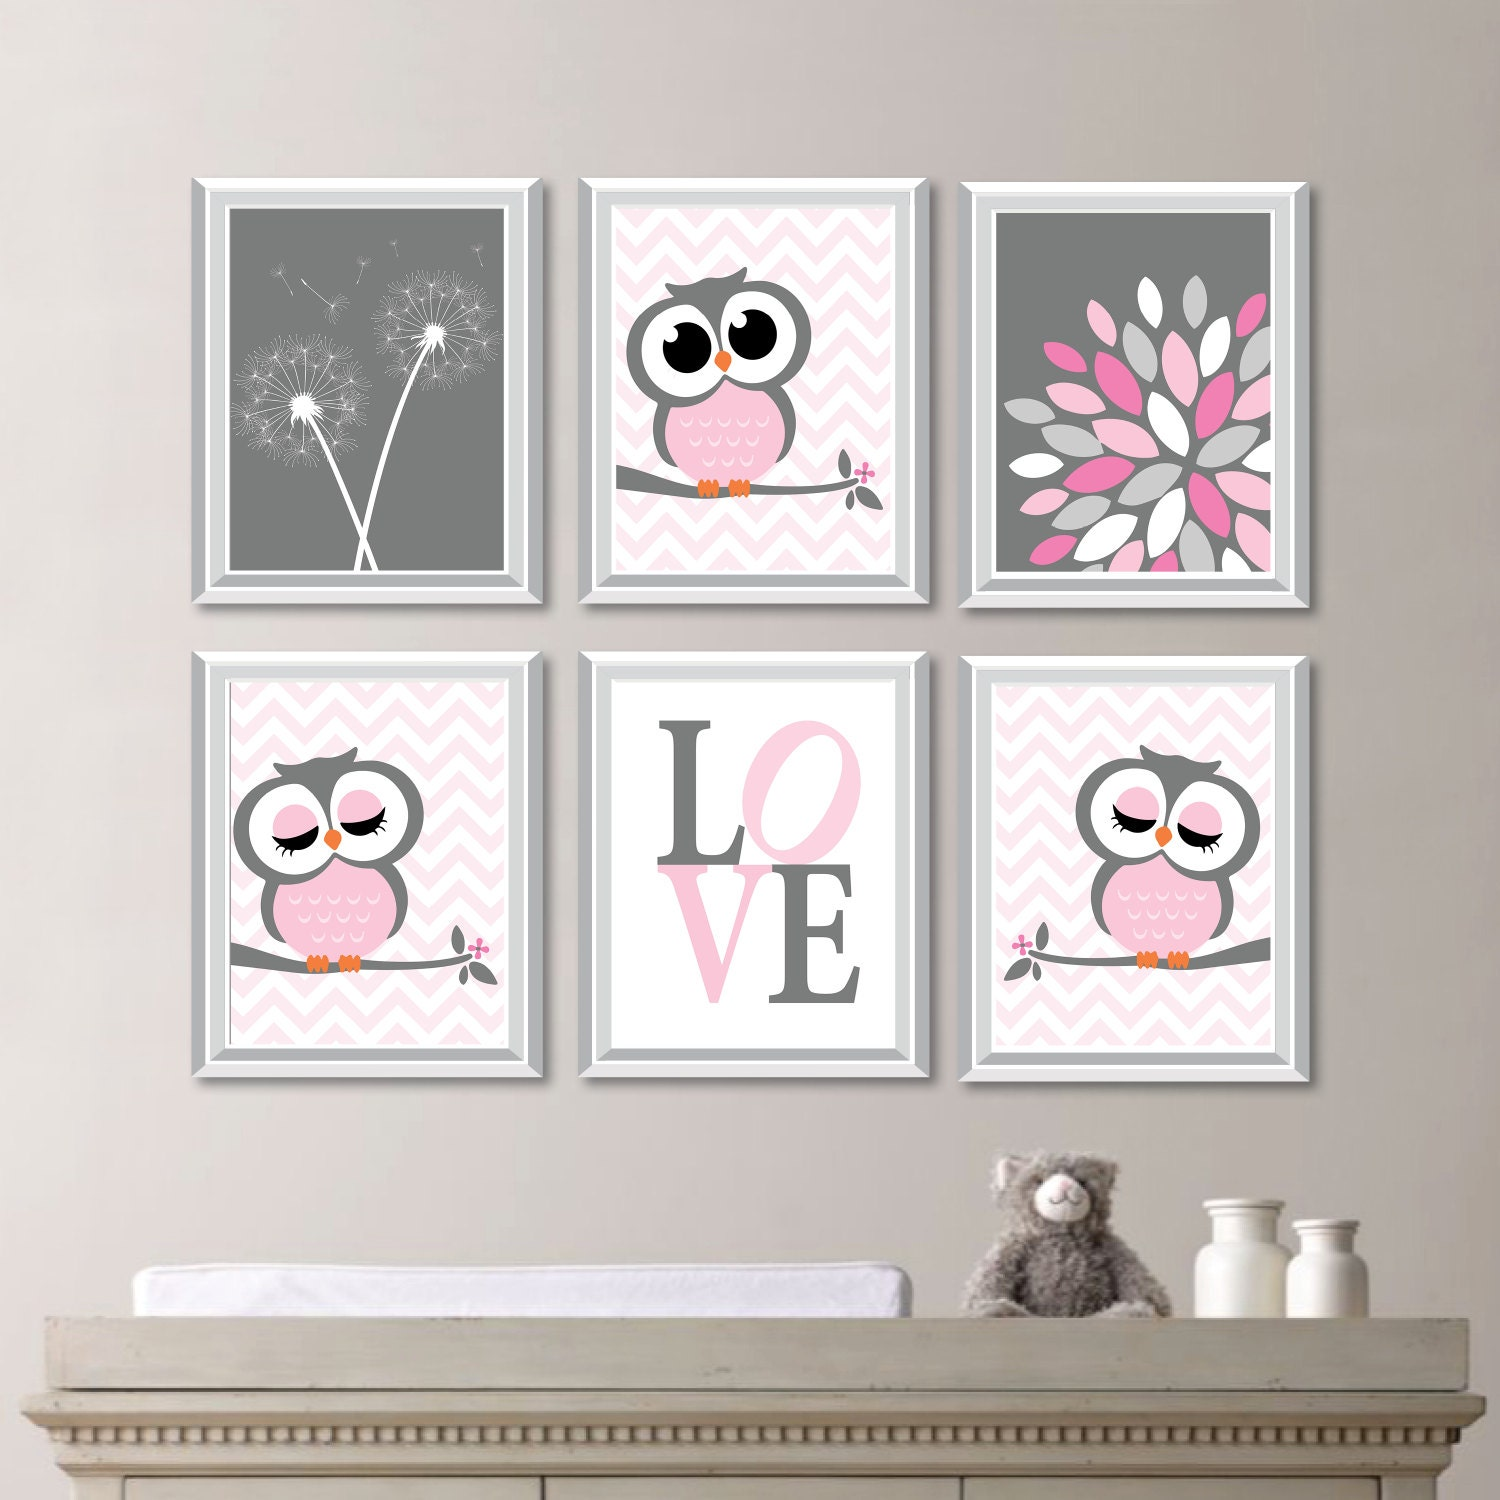 Baby girl nursery art girl nursery decor owl nursery art - Wall decor girl nursery ...